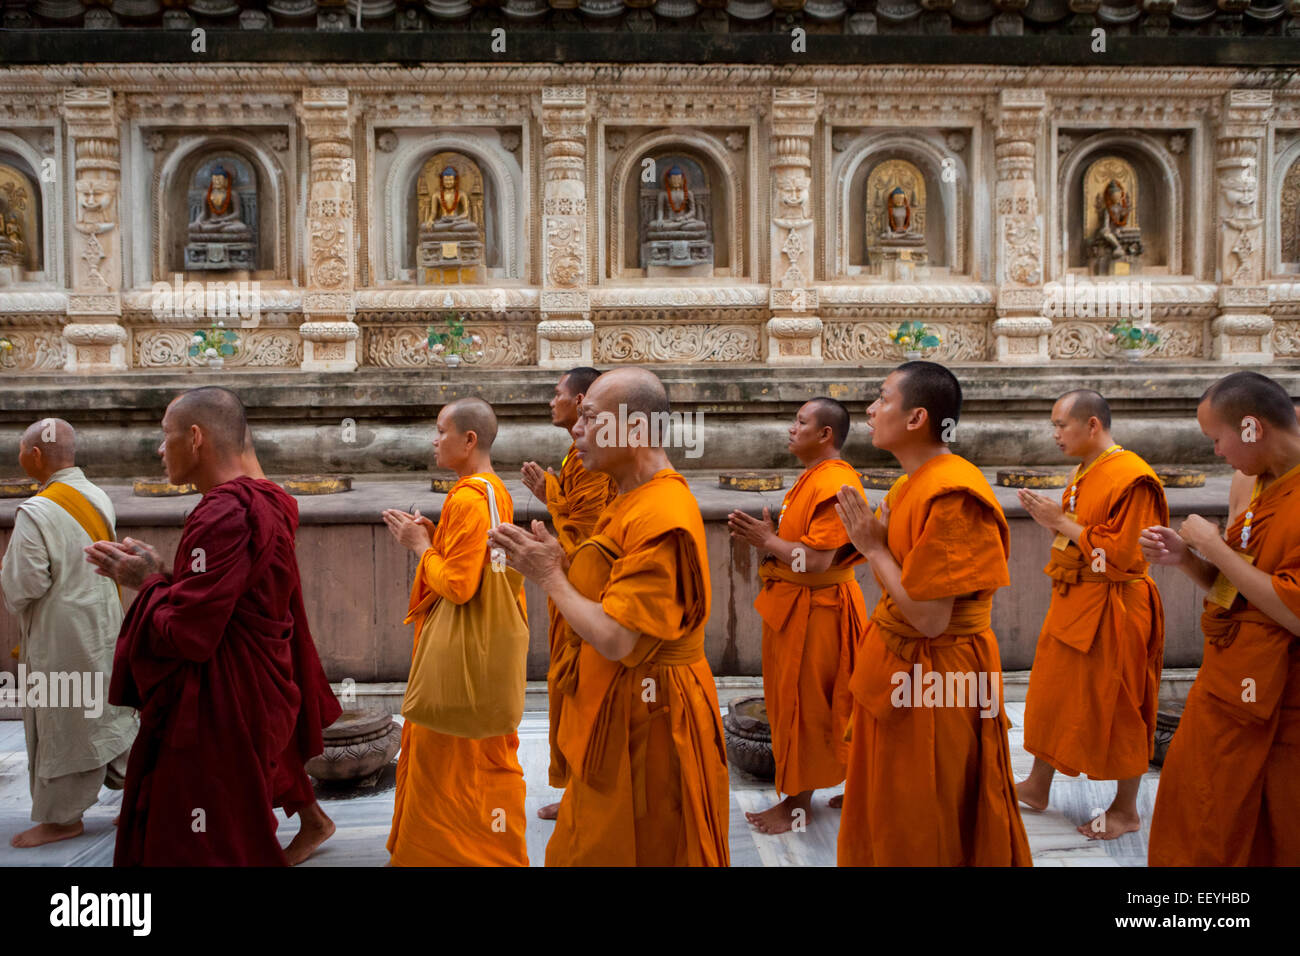 Buddhist monks encircle and pray at Mahabodhi temple, Bodh Gaya, India, a day after terrorism bomb blast on 7 July - Stock Image